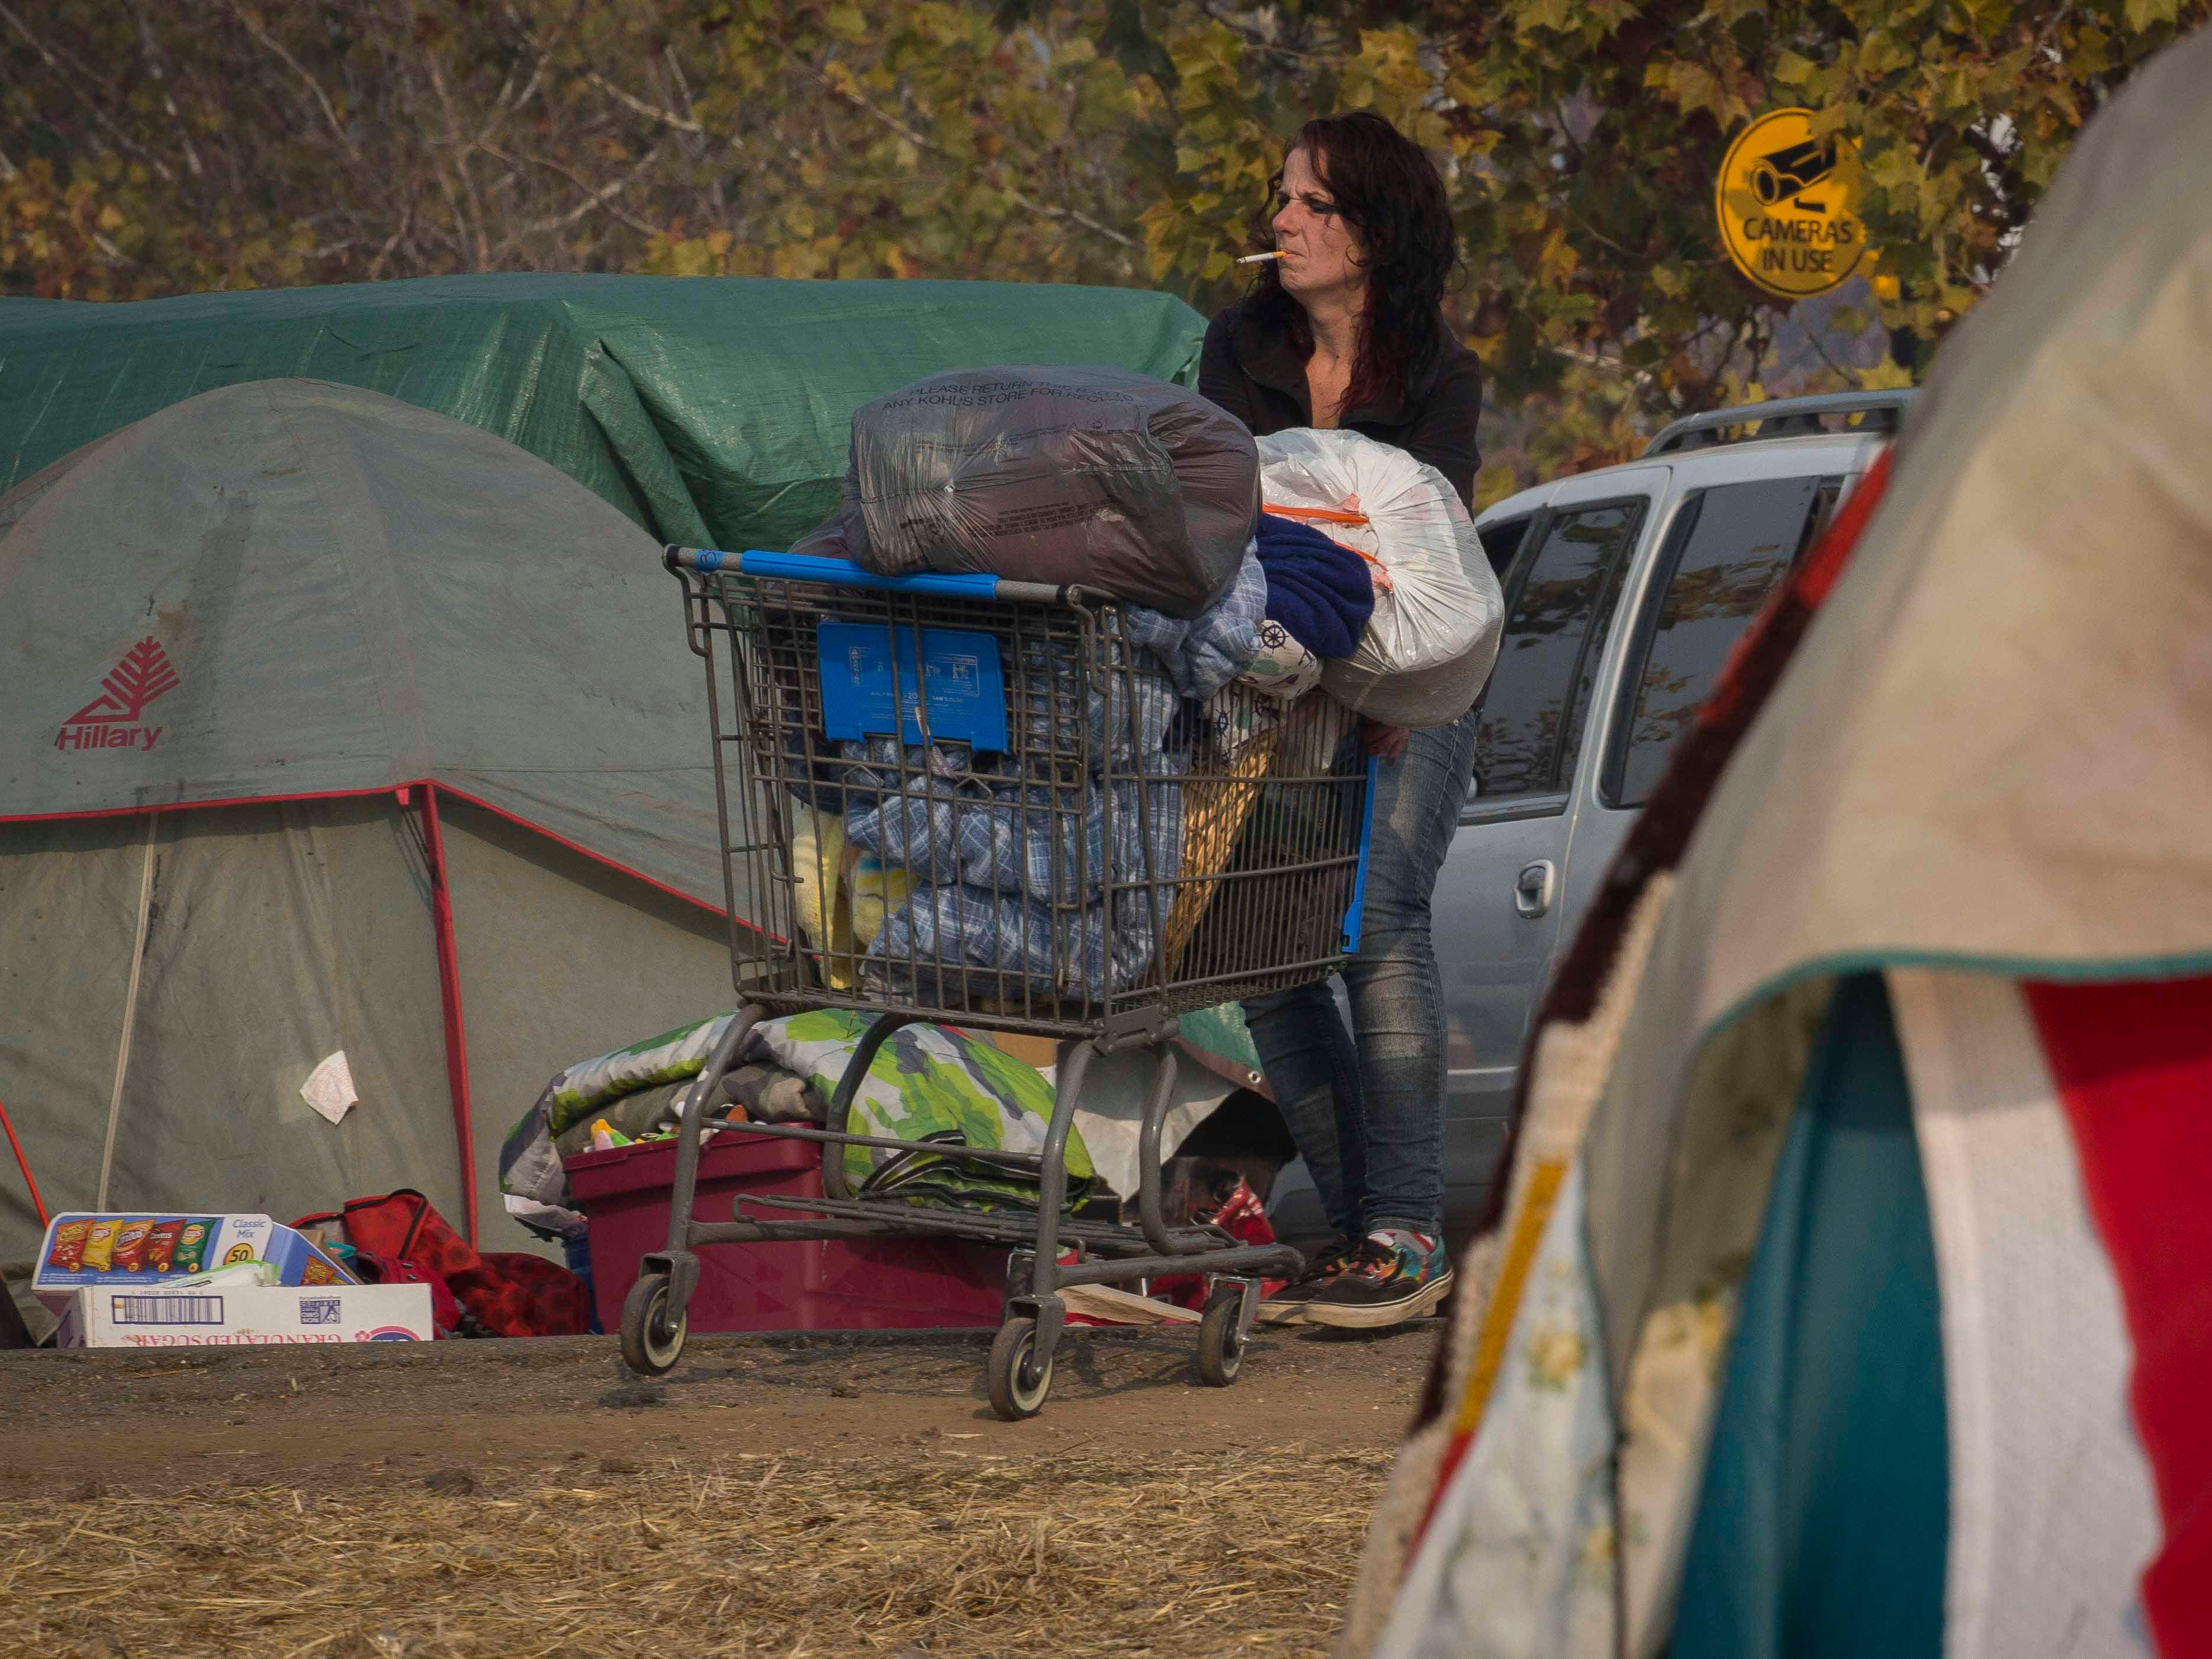 A woman uses a shopping cart to help move her belongings from a field next to the Walmart in Chico, Calif. on Nov. 18, 2018.